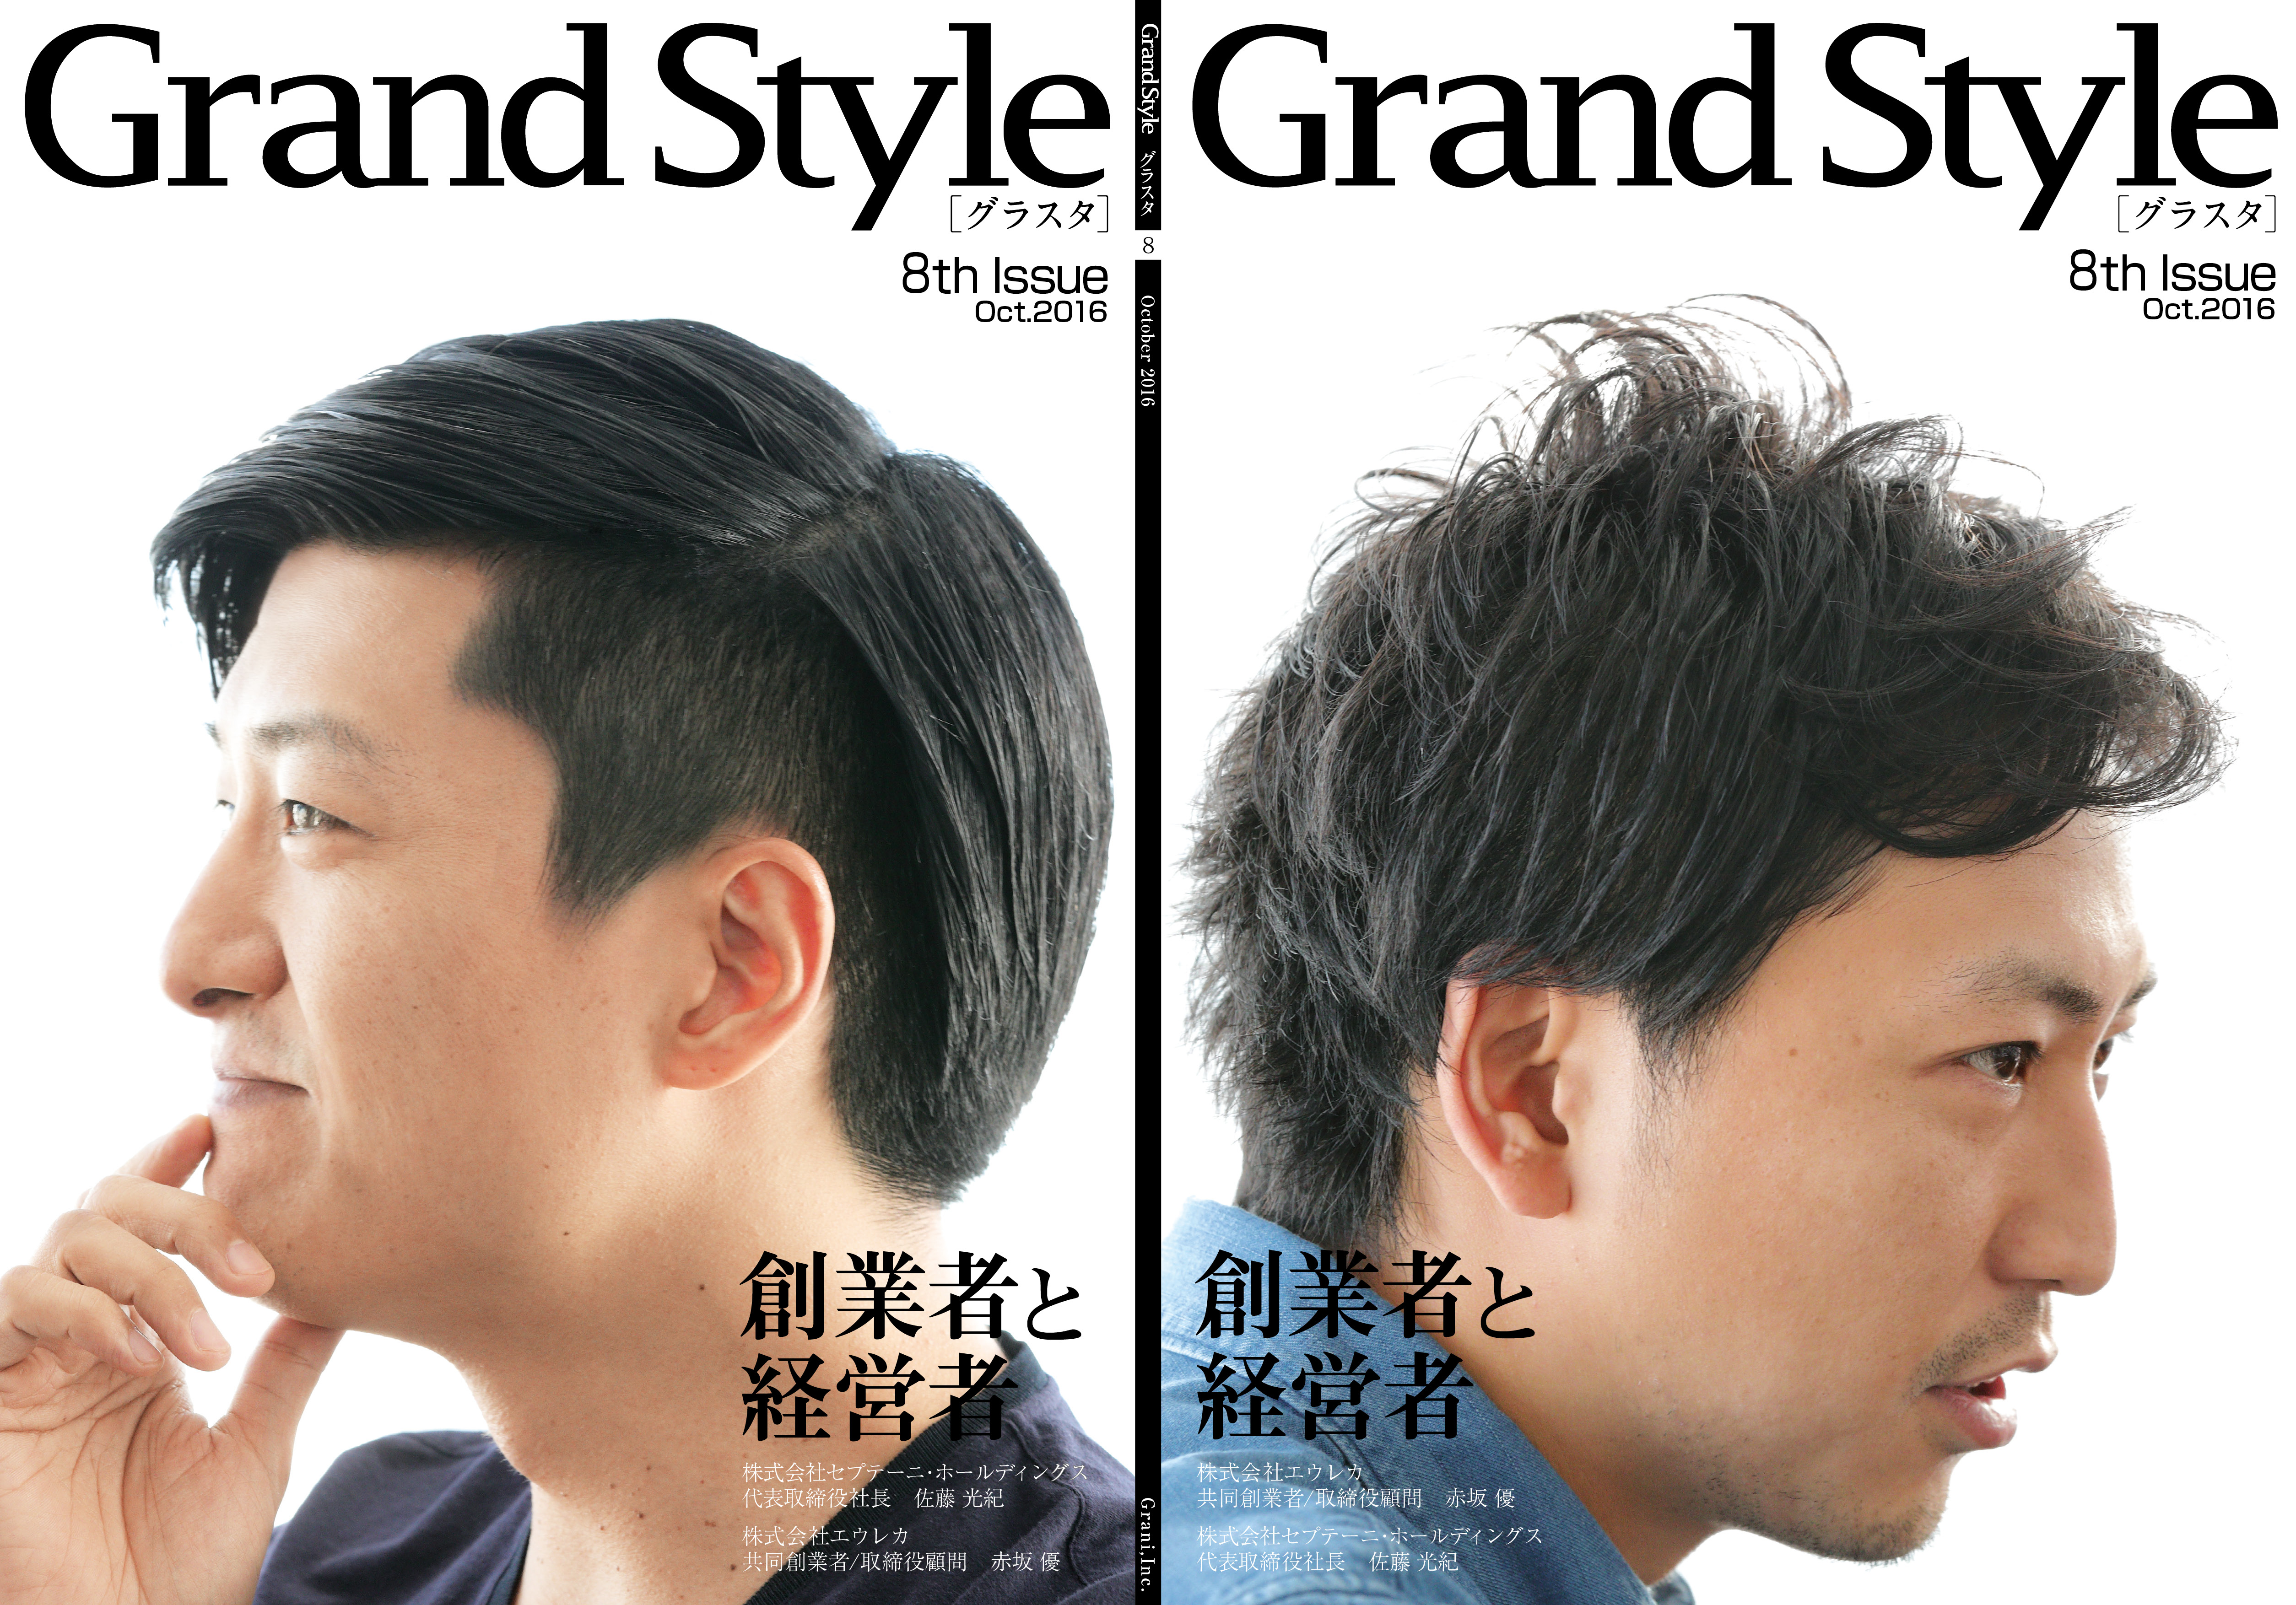 『Grand Style』8th Issue